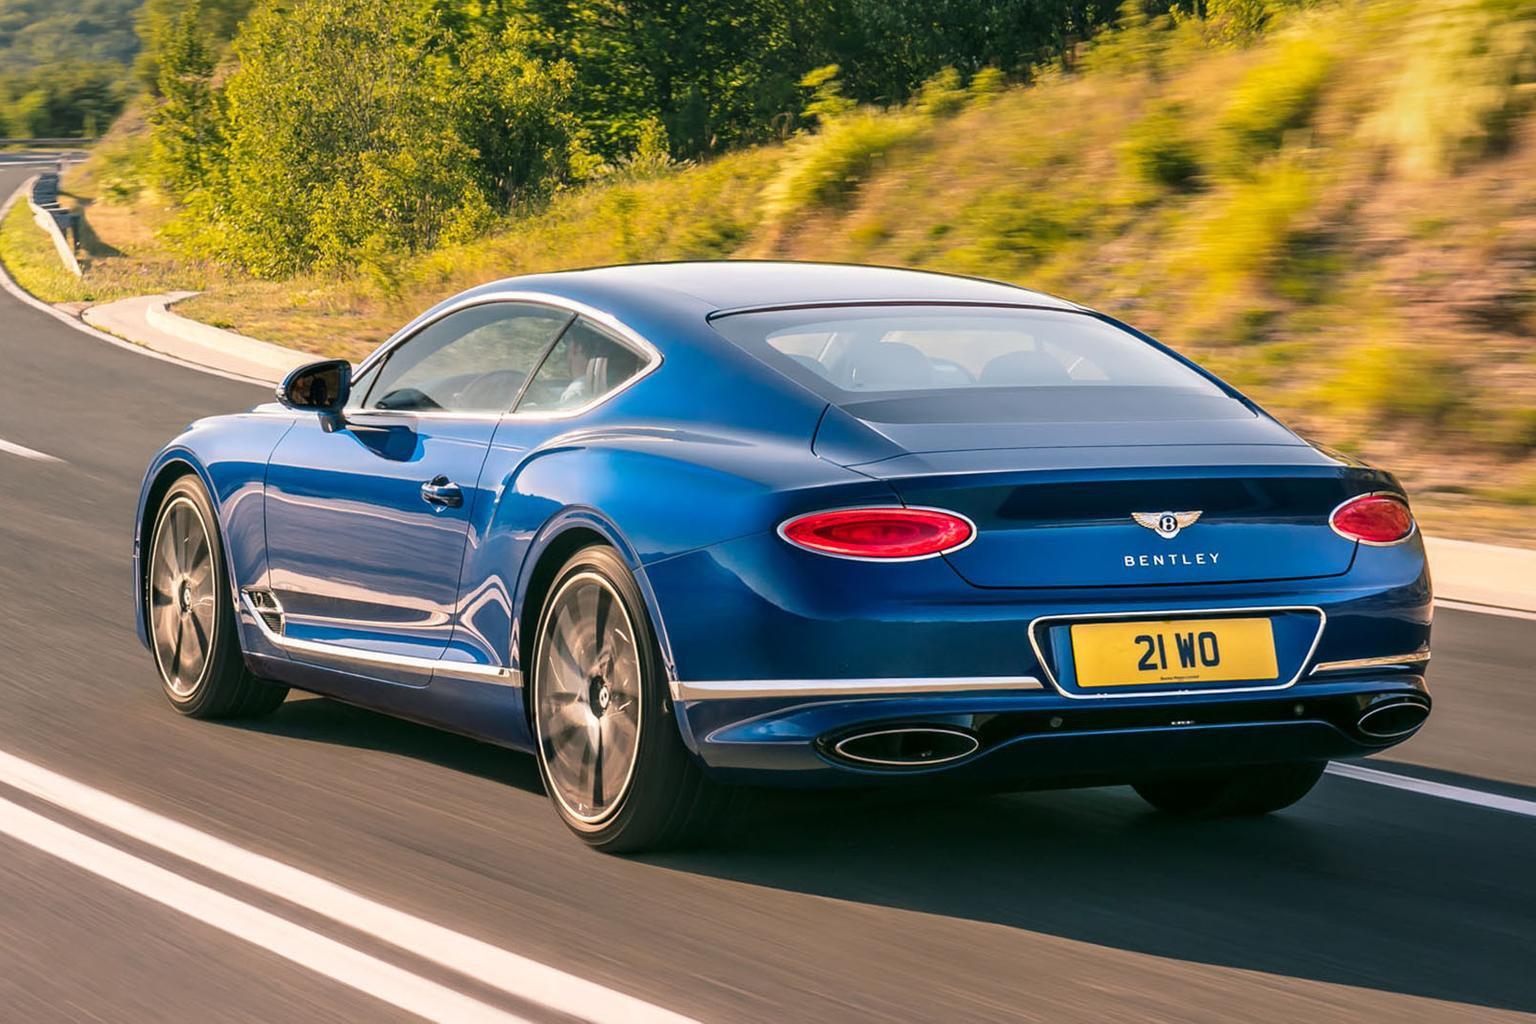 2018 bentley continental gt – pricing, specs and release date | what